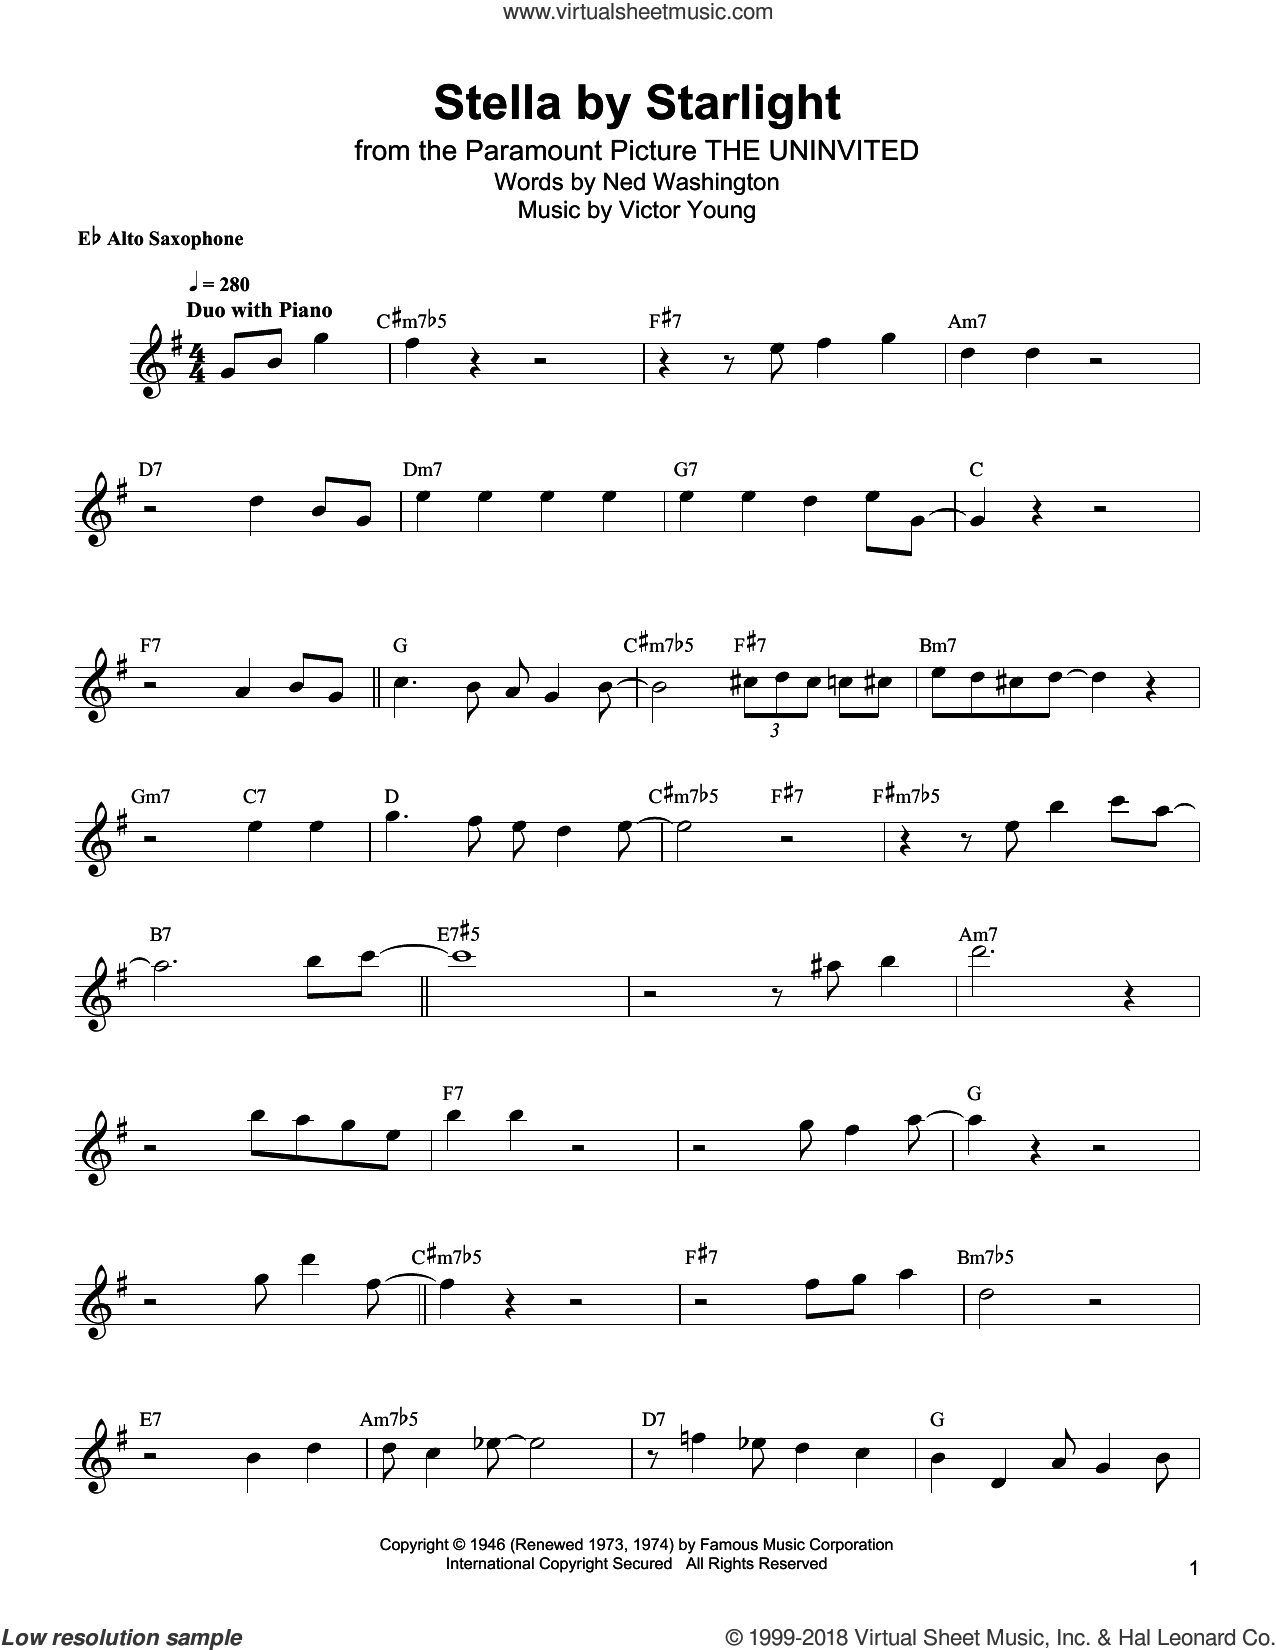 Stella By Starlight sheet music for alto saxophone (transcription) by Bud Shank, Ned Washington and Victor Young, intermediate skill level